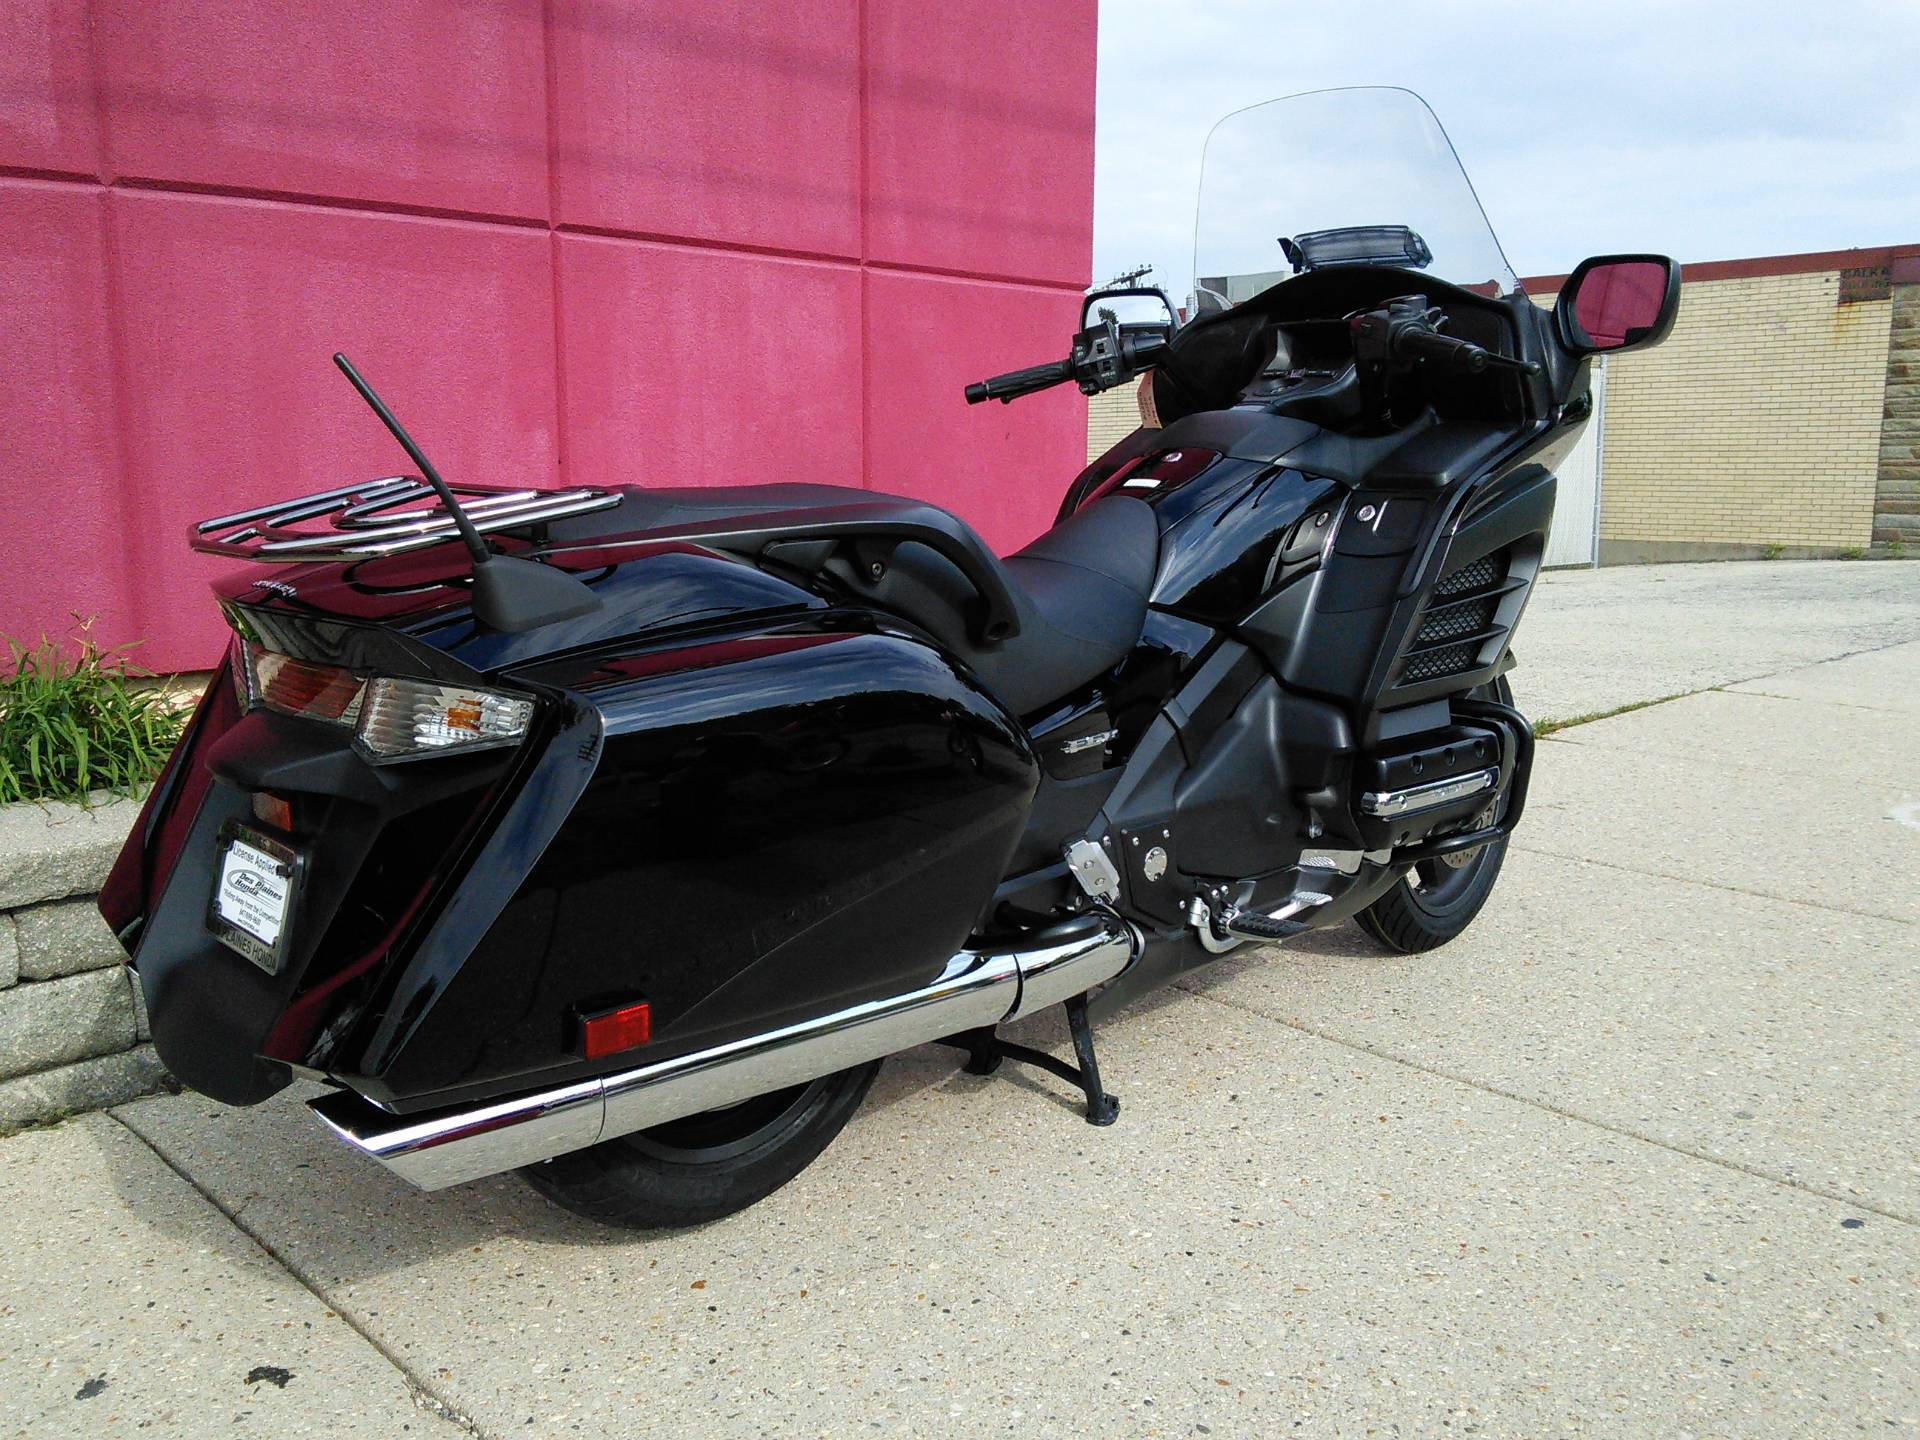 Used 2013 honda gold wing f6b motorcycles in des plaines il for Honda des plaines